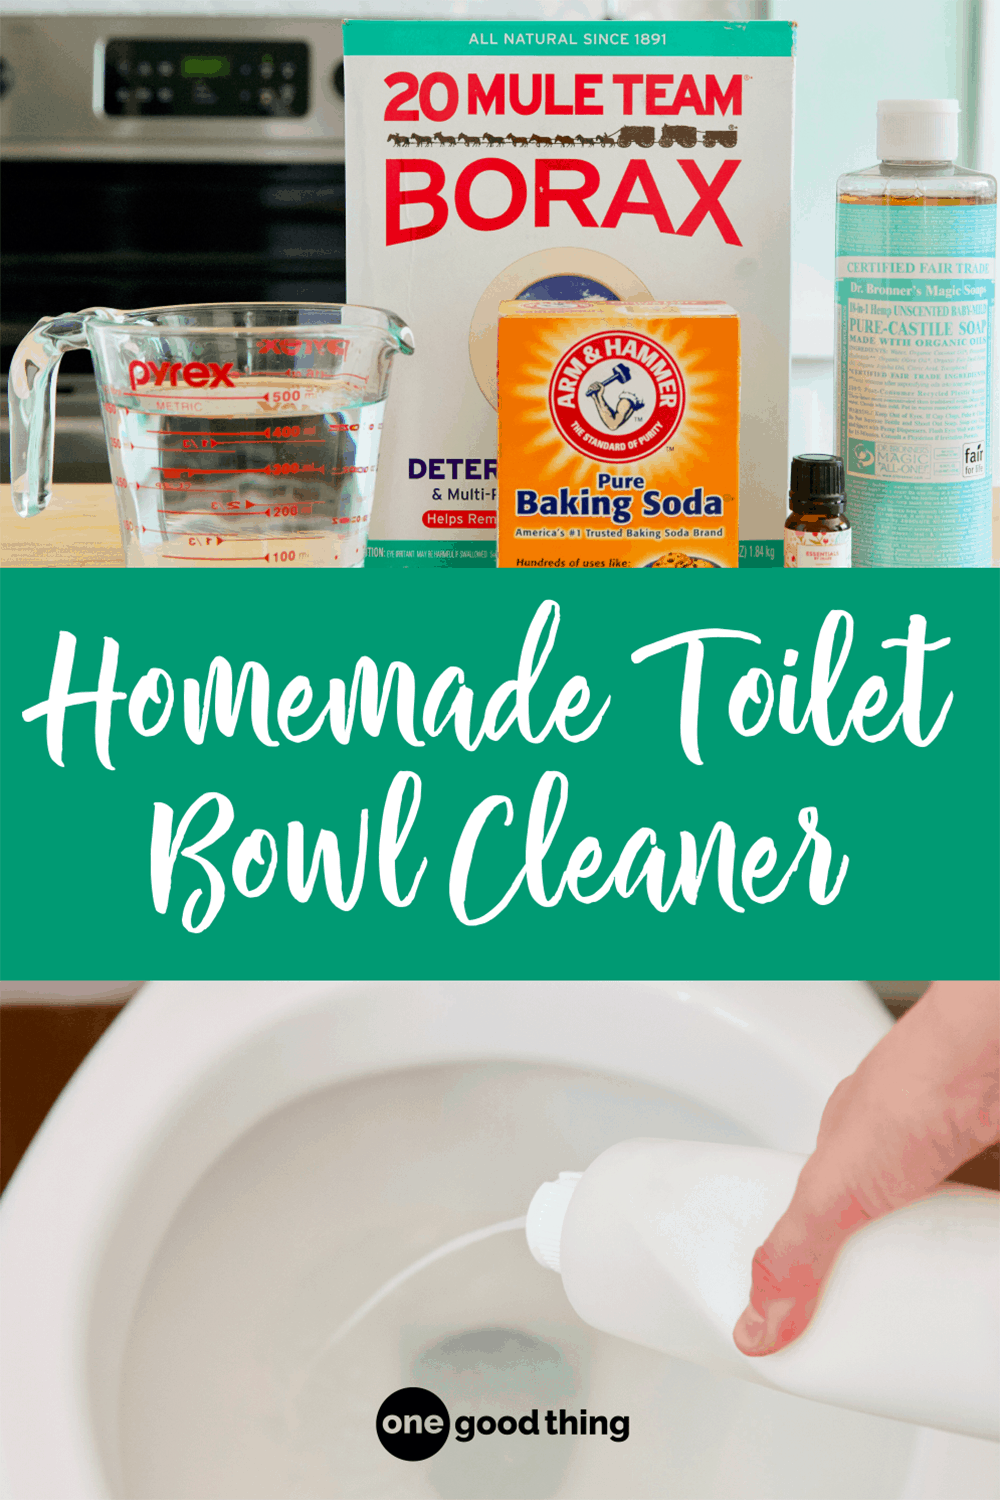 How To Make A Homemade Toilet Bowl Cleaner Homemade Toilet Bowl Cleaner Toilet Bowl Cleaner Toilet Bowl